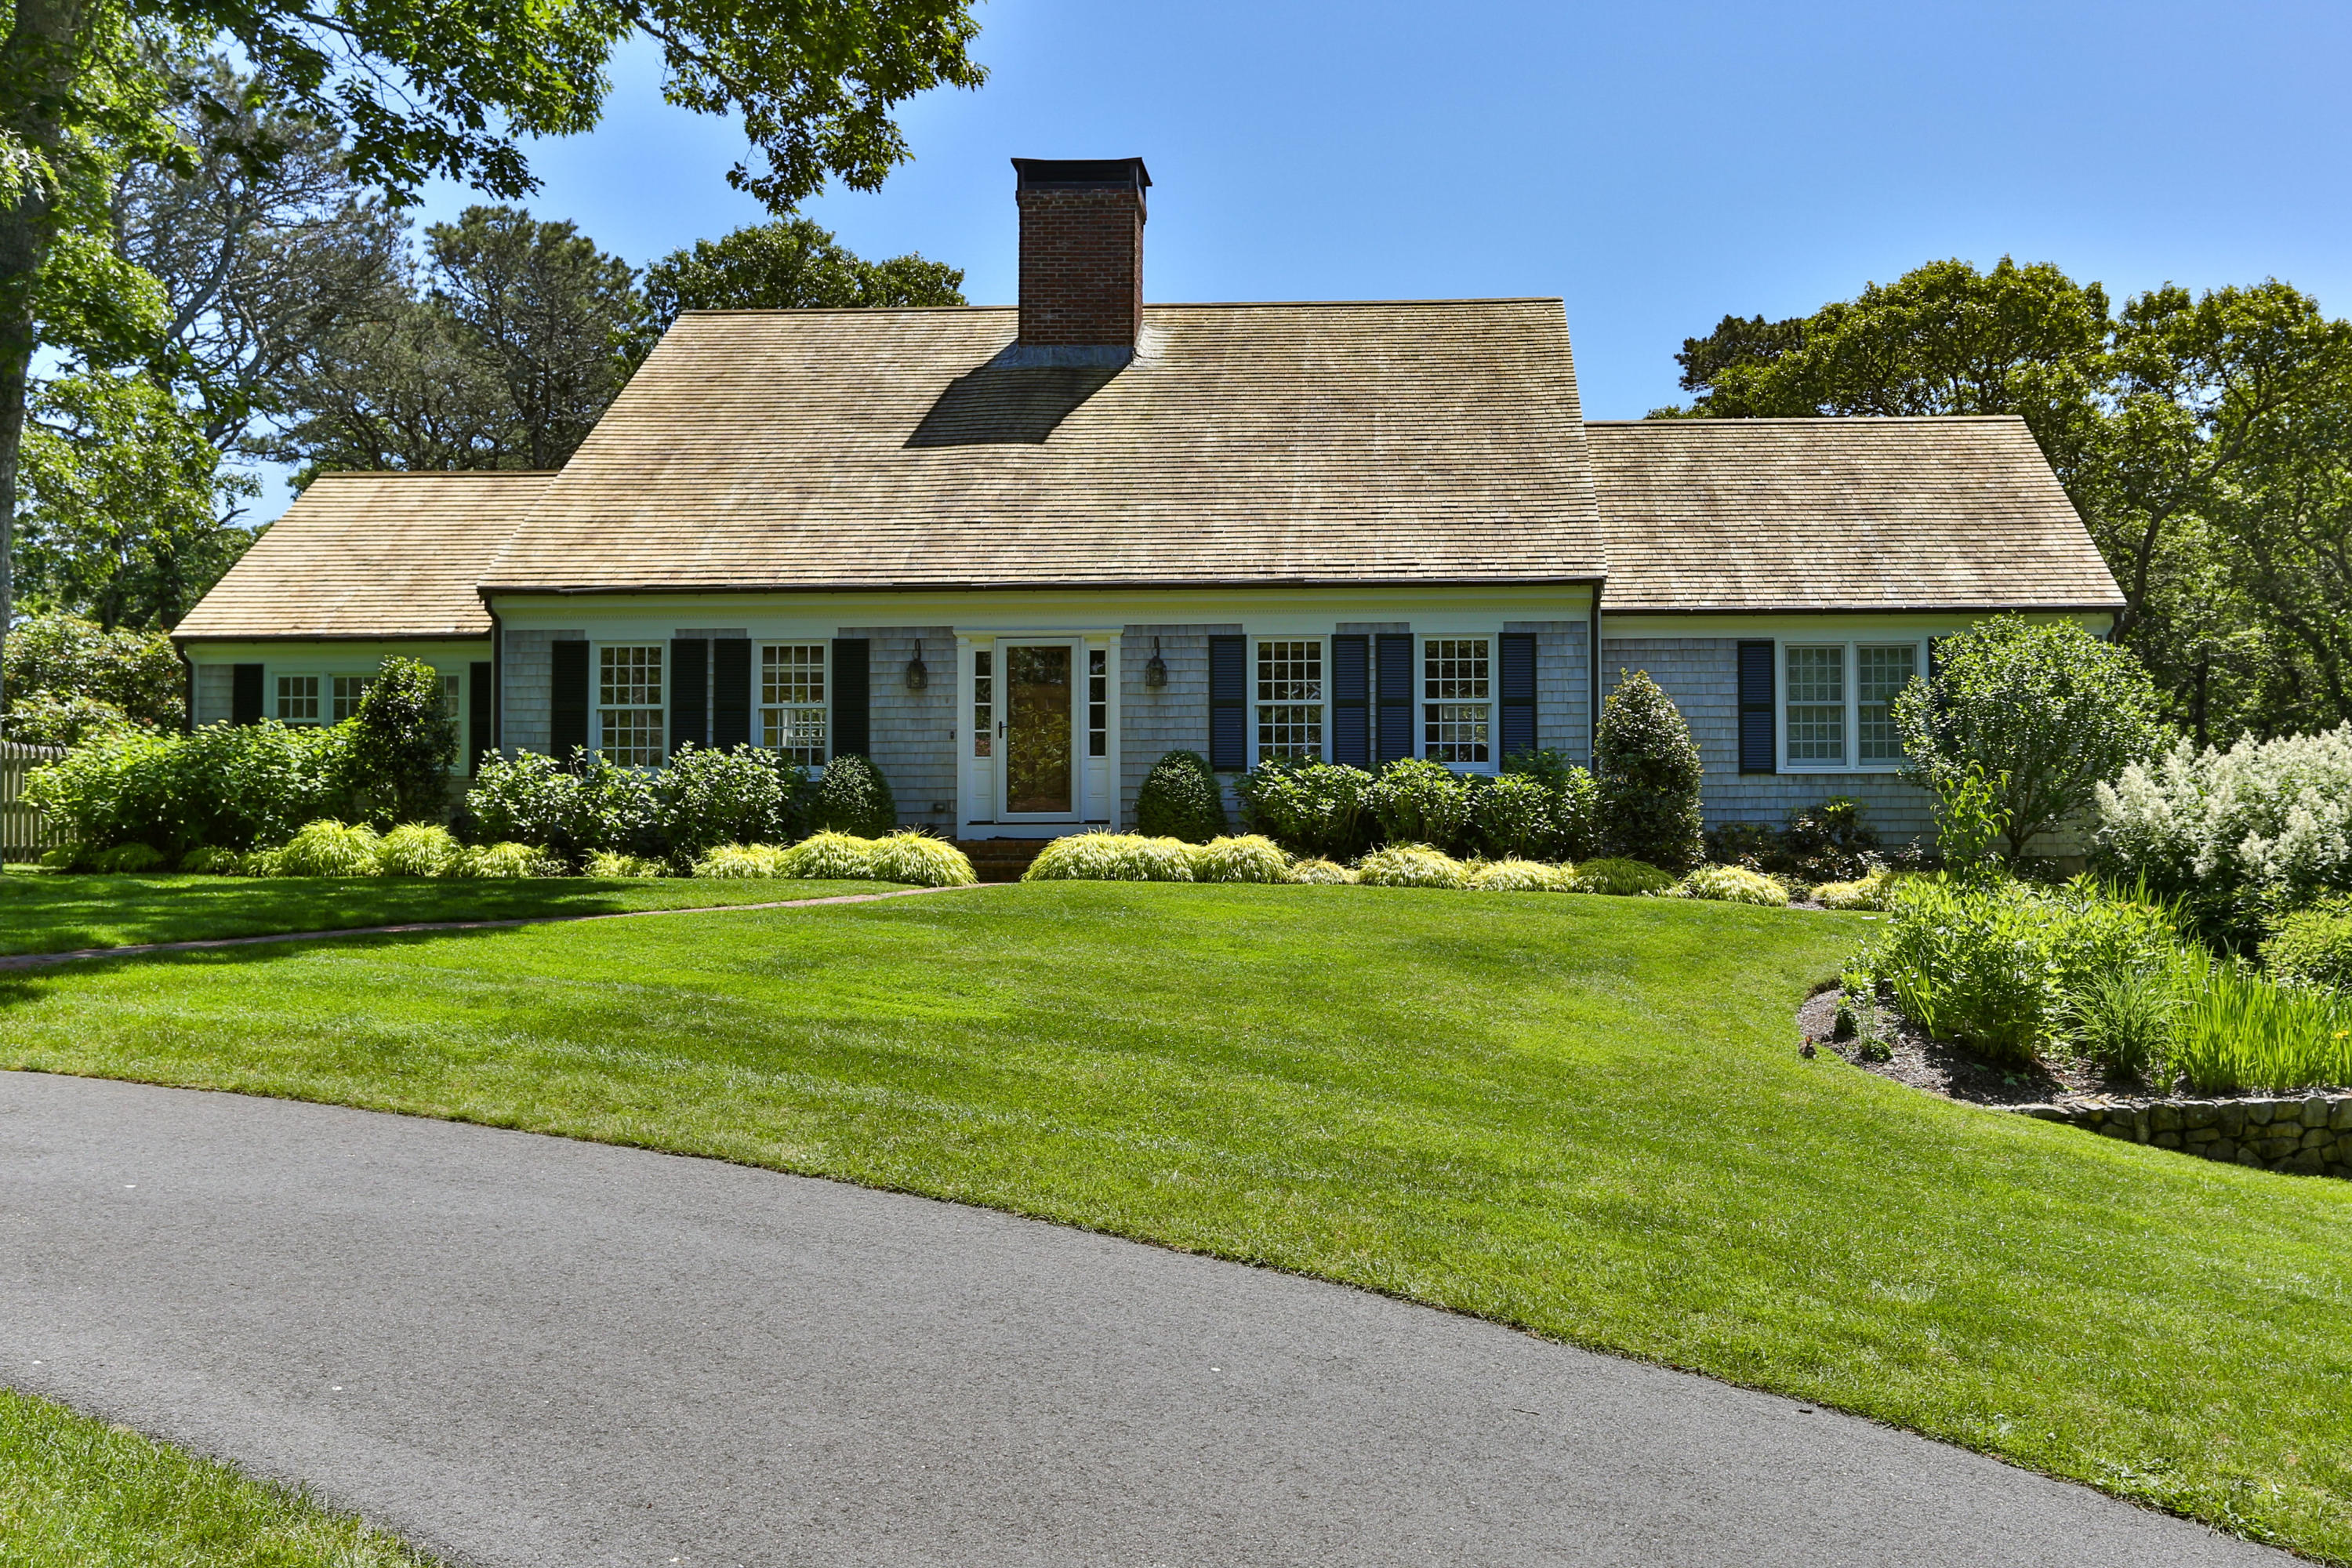 98 Attucks Trail, Chatham, MA details